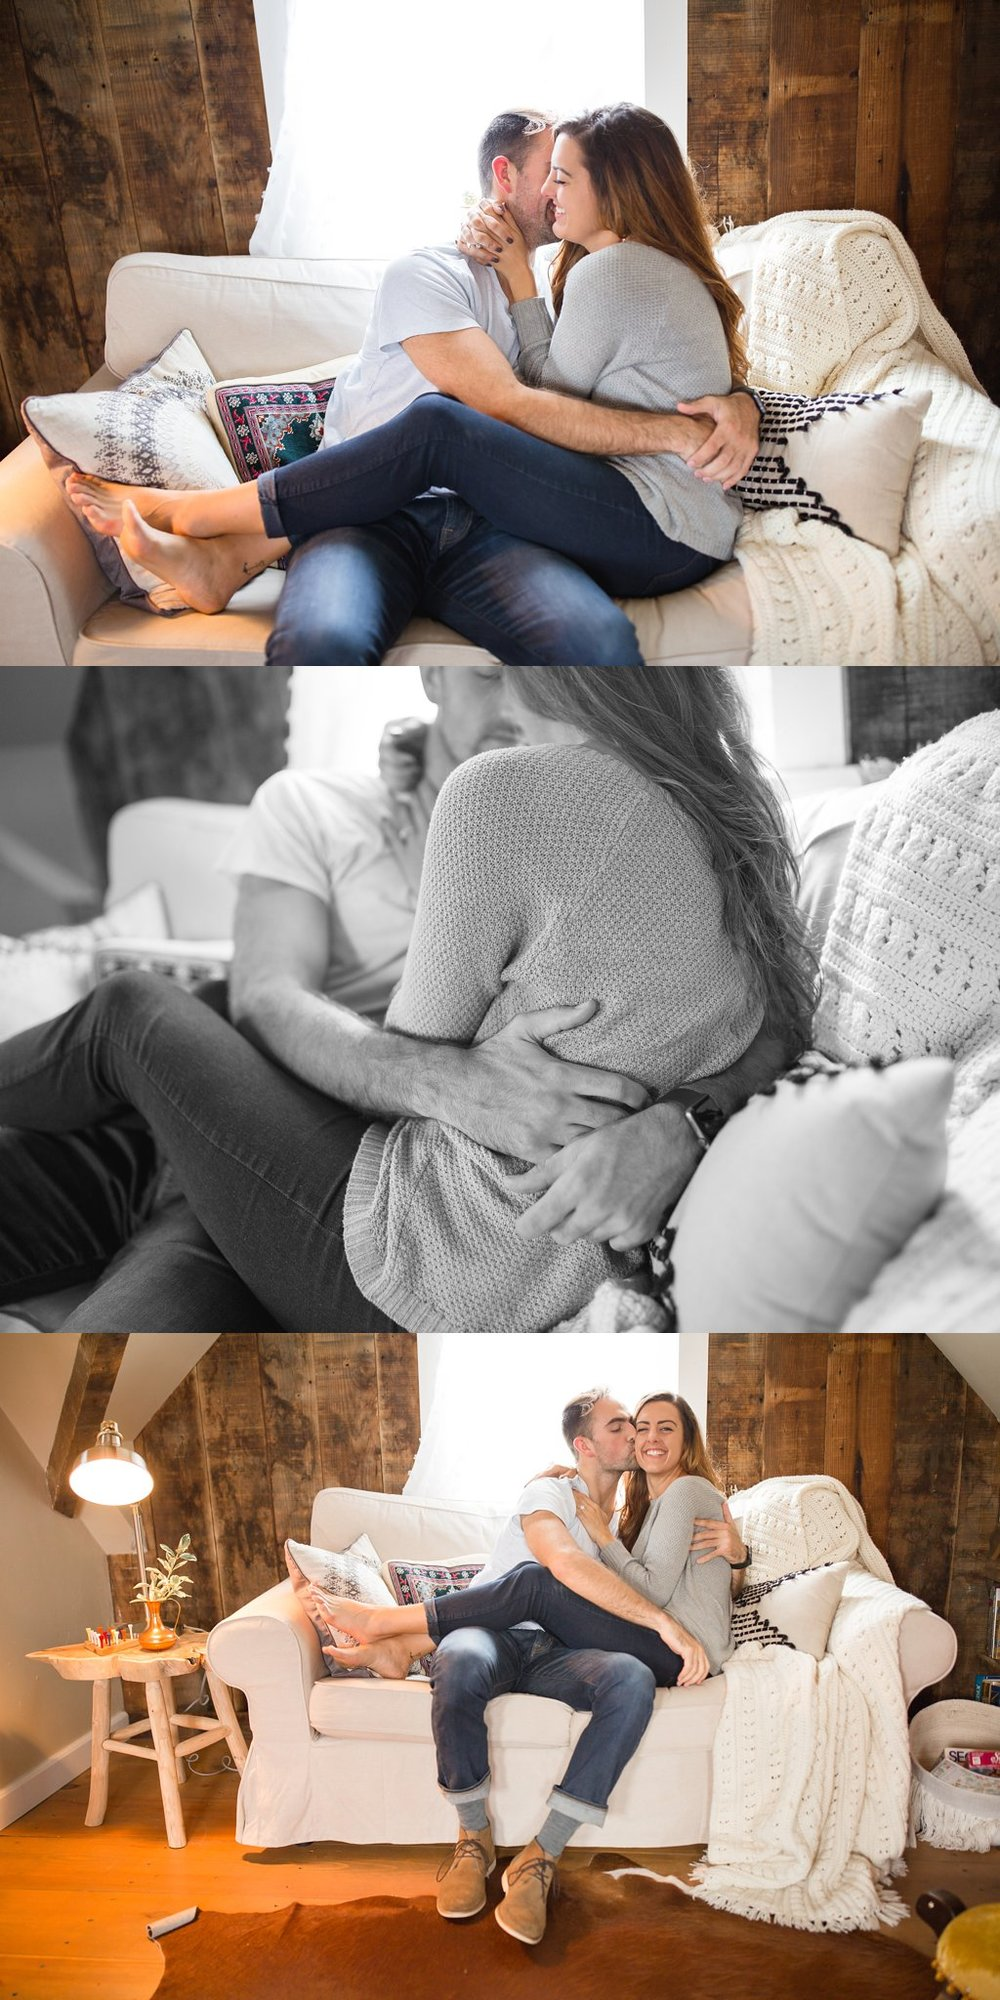 Indoor-Intimate-Engagement-Session02.jpg